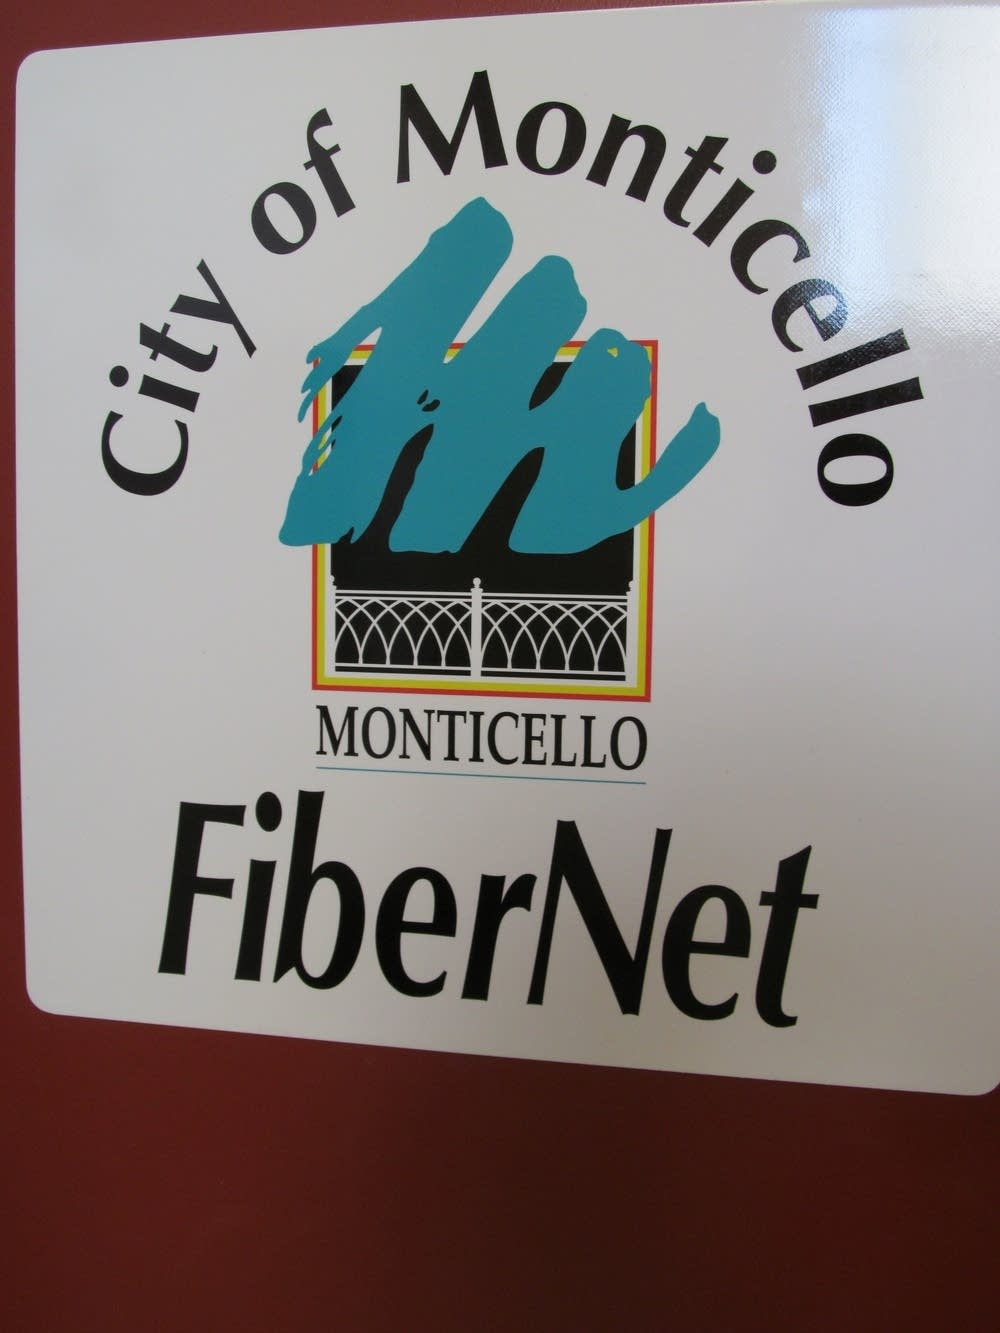 City of Monticello municipal broadband